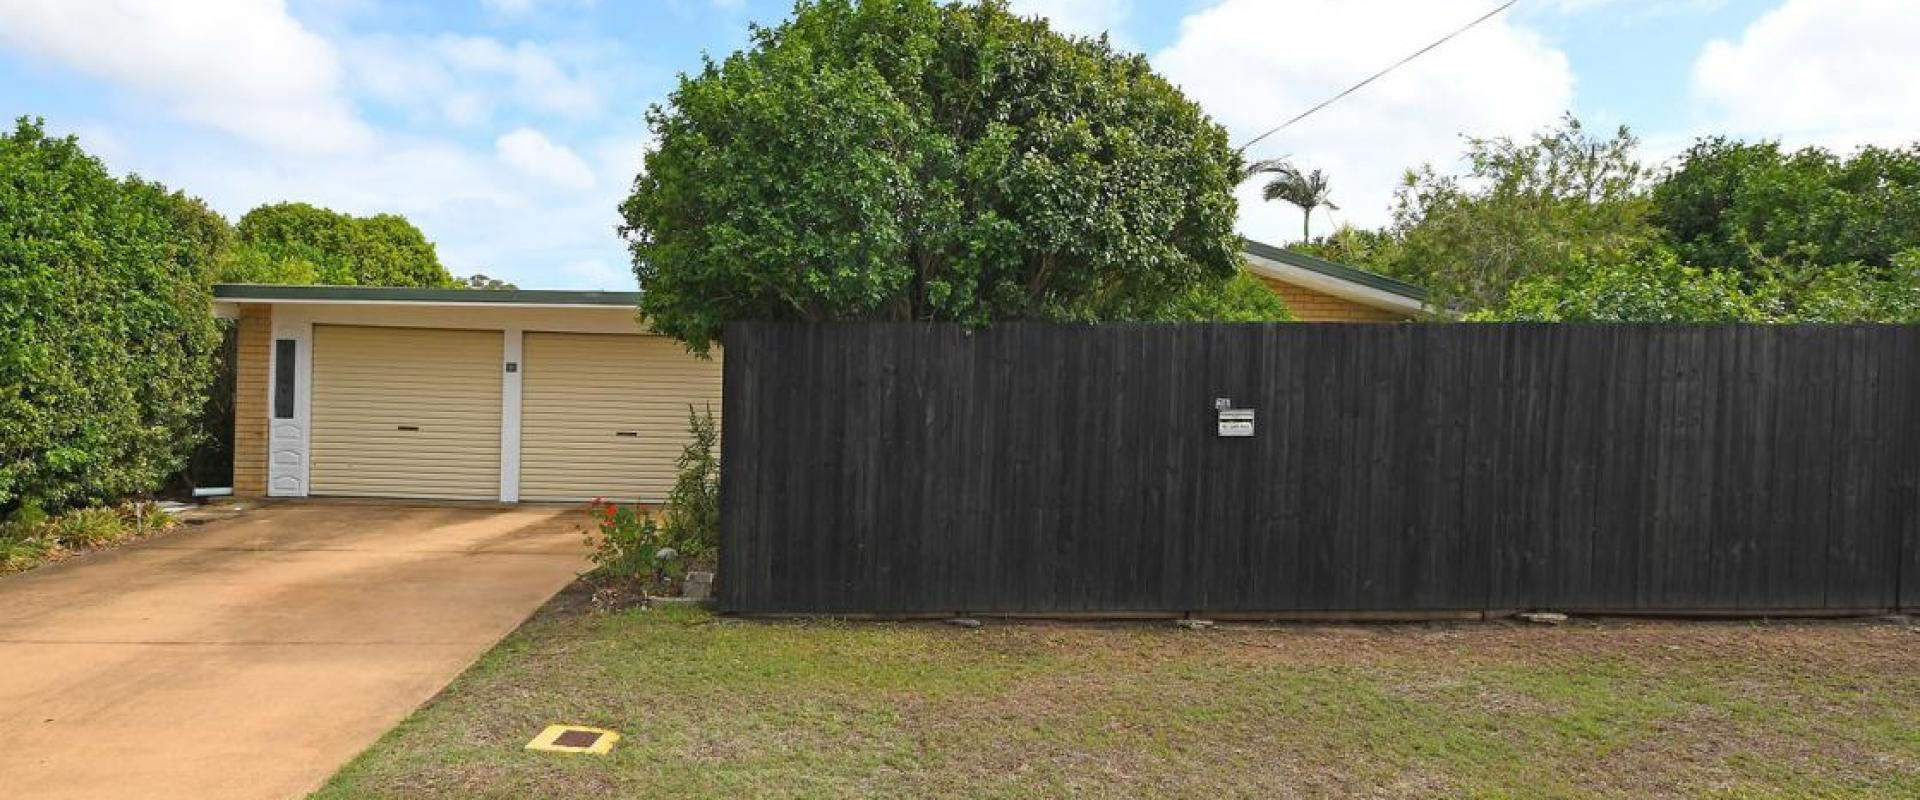 MAINTENANCE WORK IS REQUIRED FOR THIS DELIGHTFUL FAMILY HOME POSITIONED AT THE END OF A QUIET CUL DE SAC, CENTRALLY LOCATED, CLOSE TO CBD, SHOPS BEACH